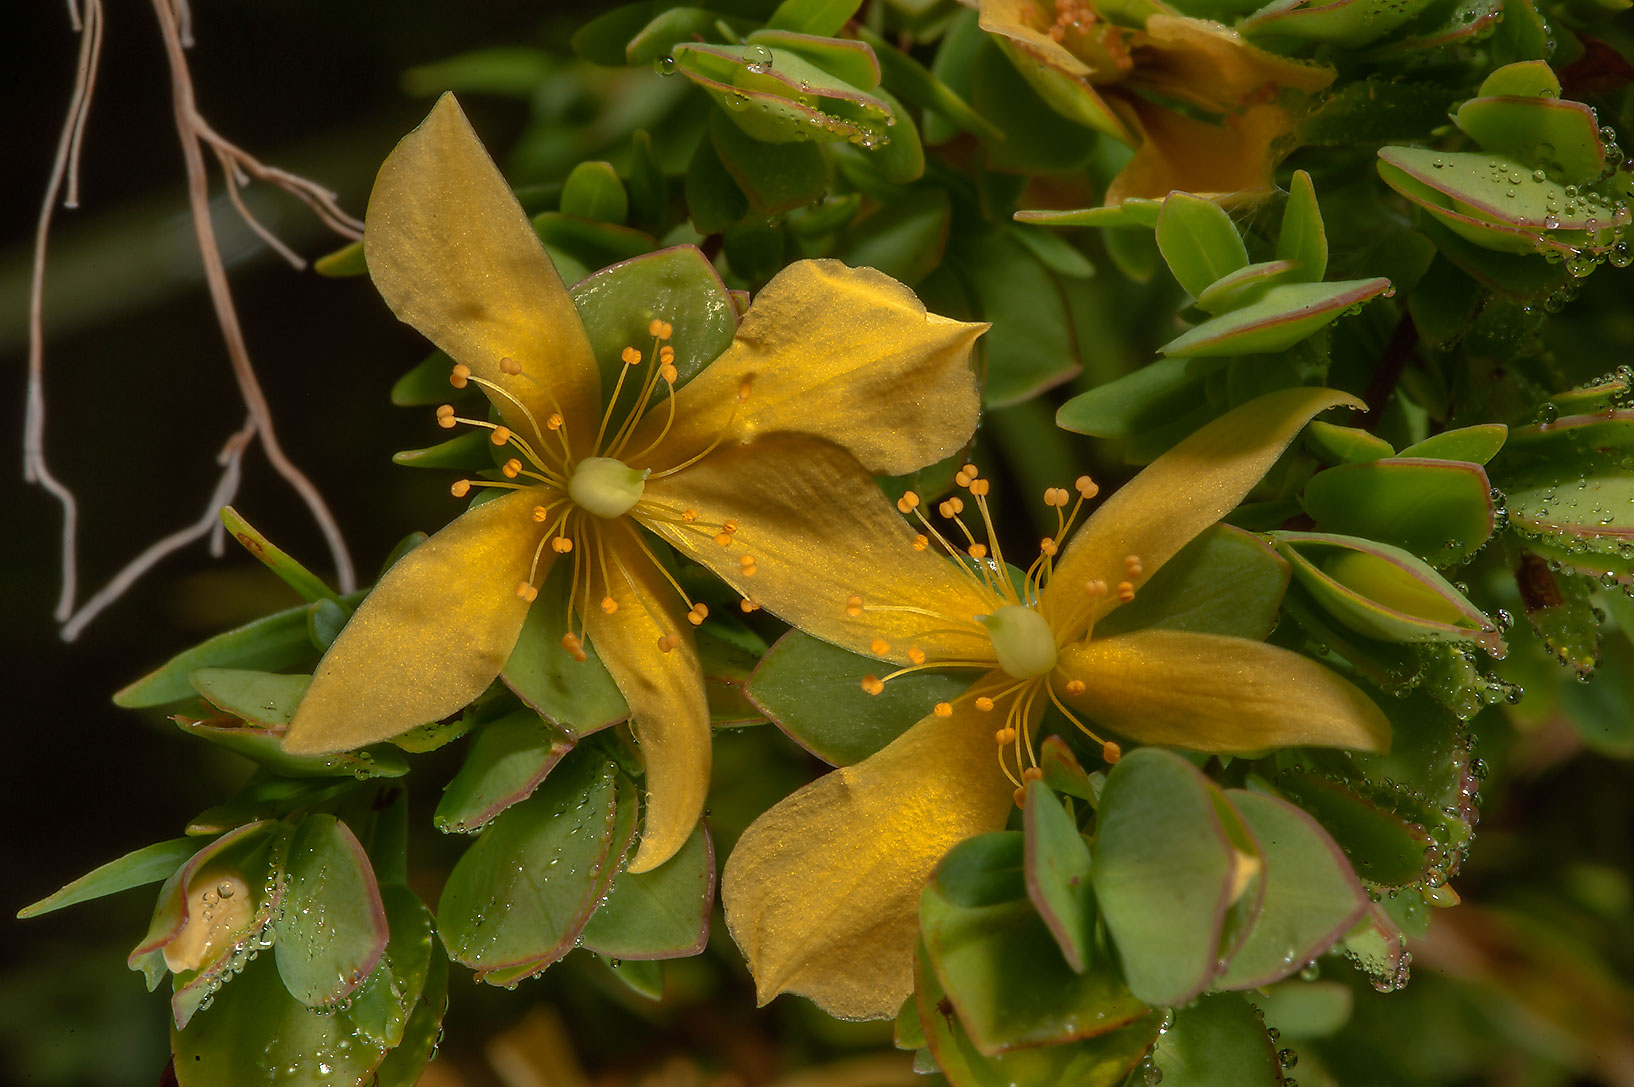 Flowers of St. Andrew cross (Hypericum, Ascyrum...in Lake Bryan Park. Bryan, Texas